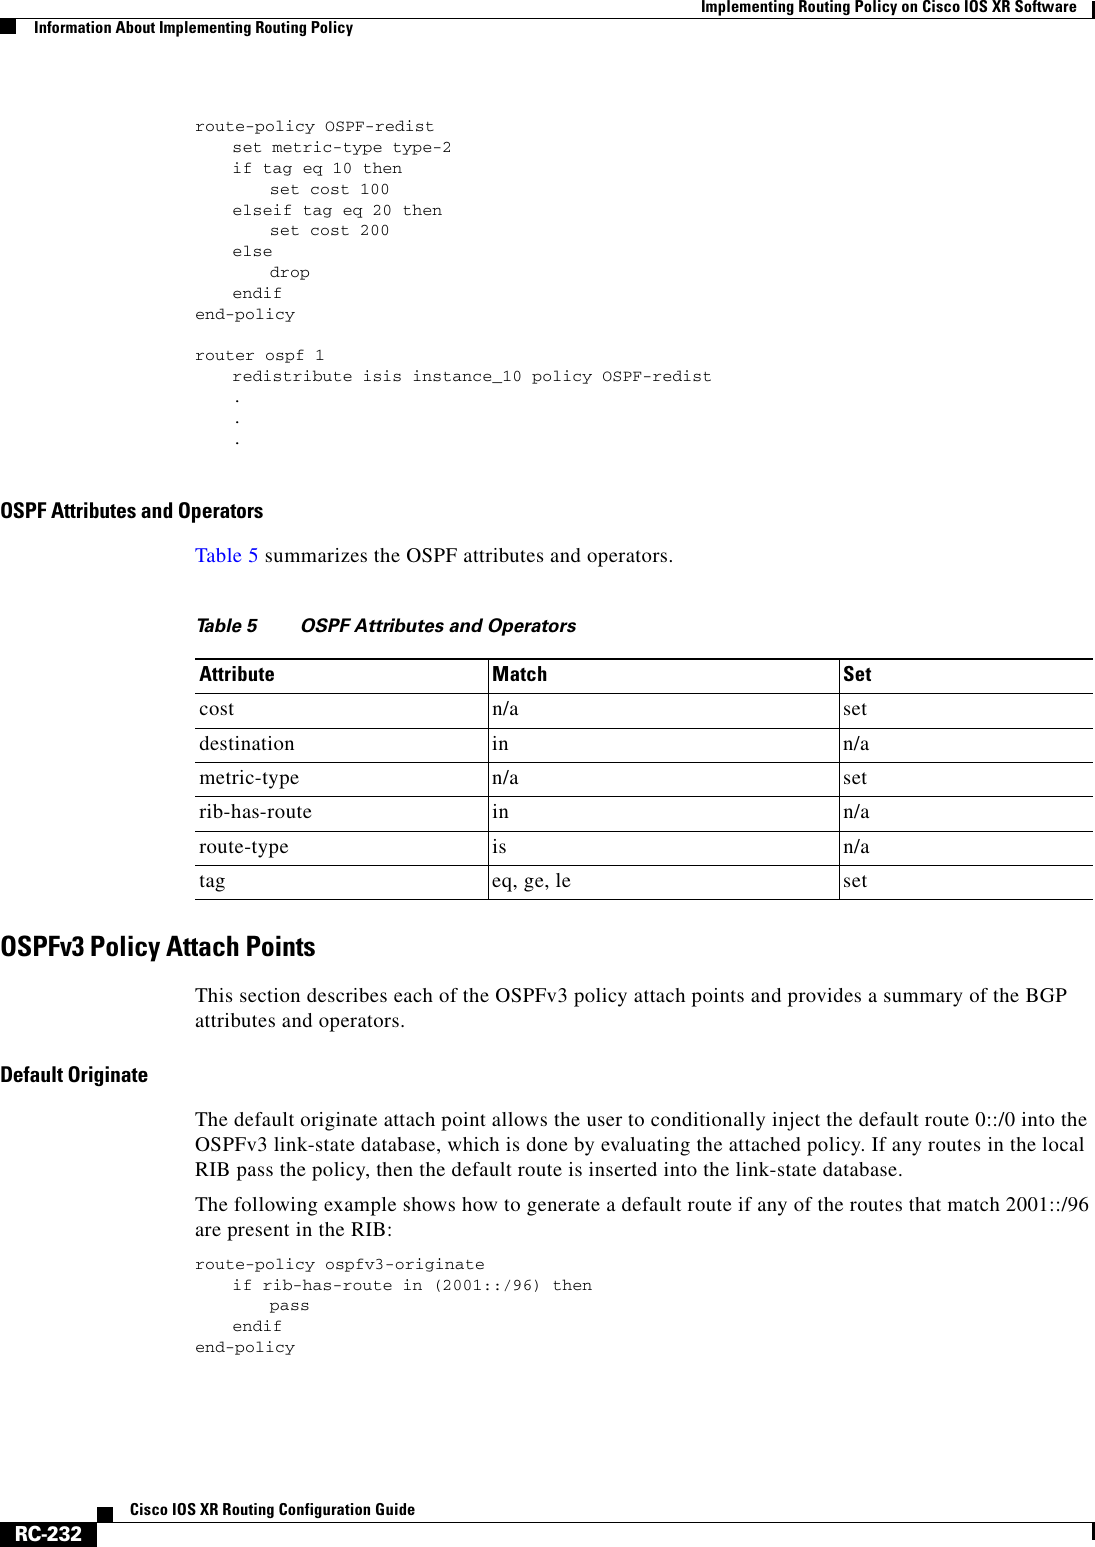 Cisco Systems Ios Xr Users Manual